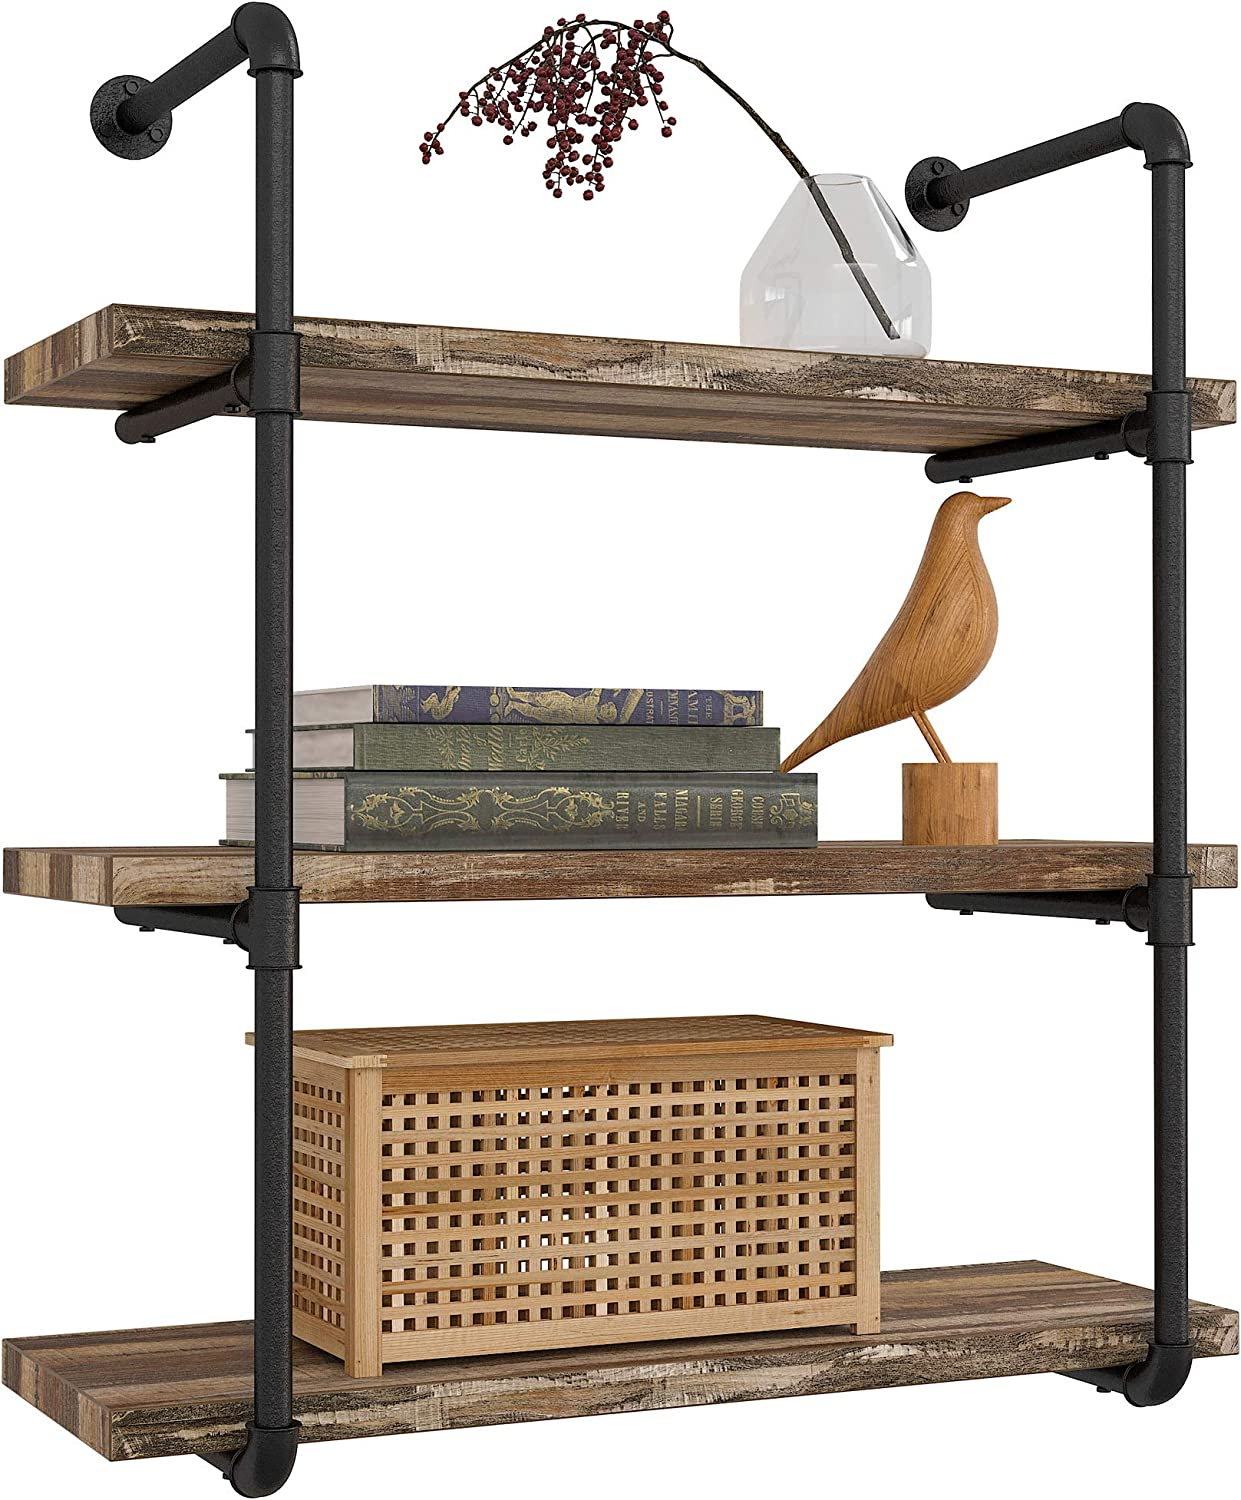 Amazon Com Ironck Industrial Shelving Pipe Shelf 3 Tier Planks Included Rustic Home Decor Wall Decor Wall Shelves For Bedroom Bathroom Kitchen Kitchen Dining